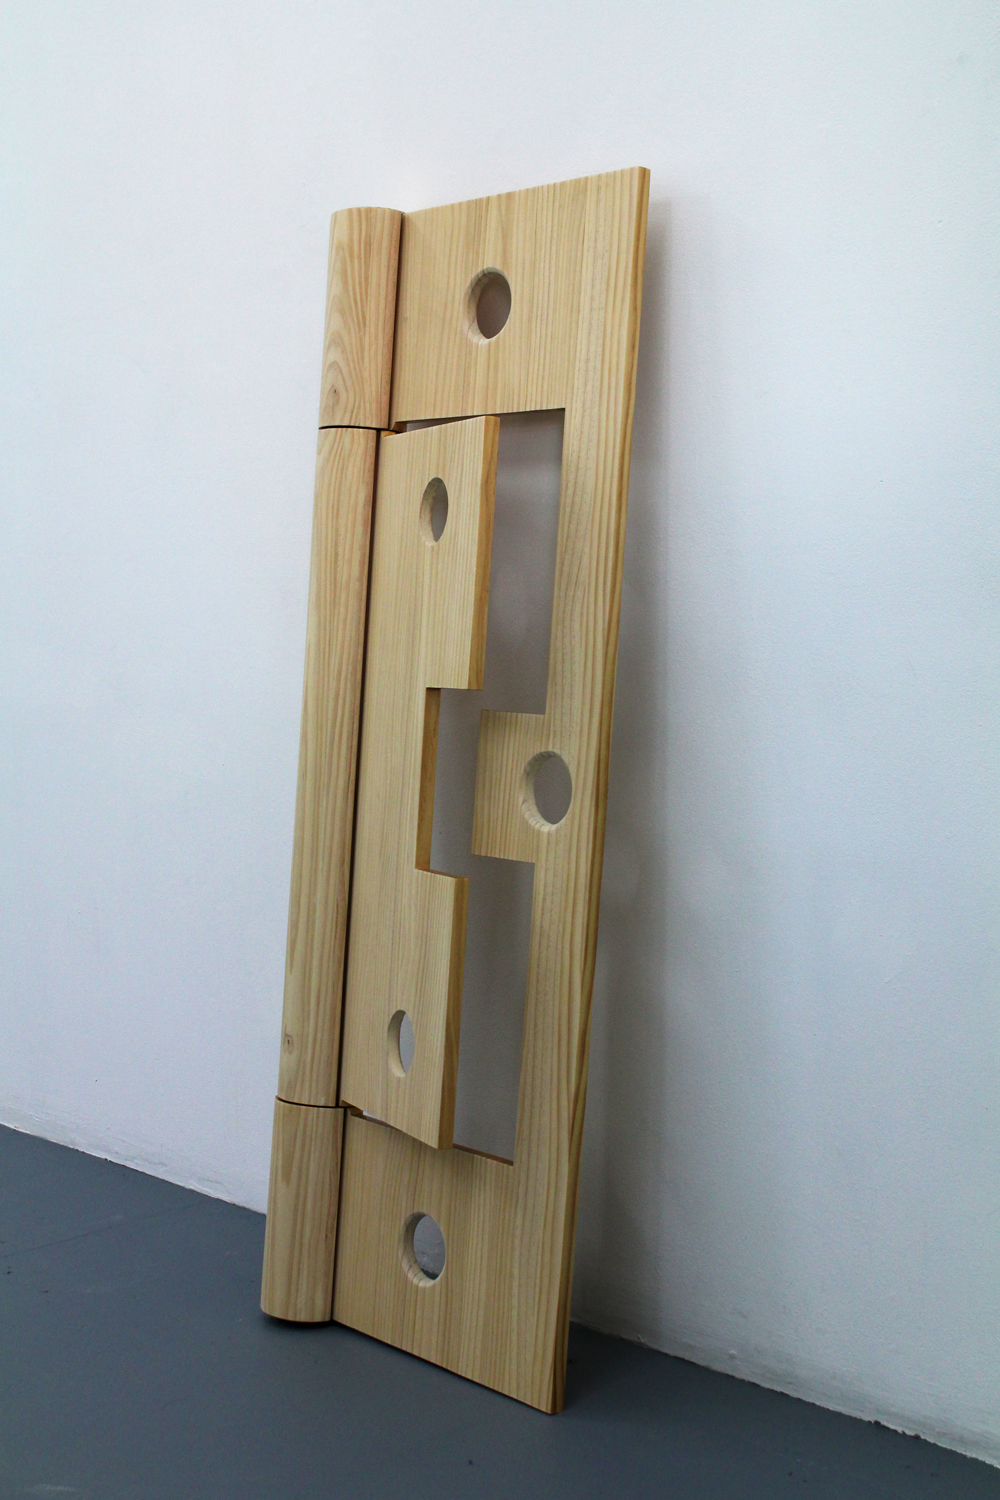 Chris Bond, Field, (Wooden Cypher, hinge), 2015, polyurethane, pine, 140 x 51 x 11 cm